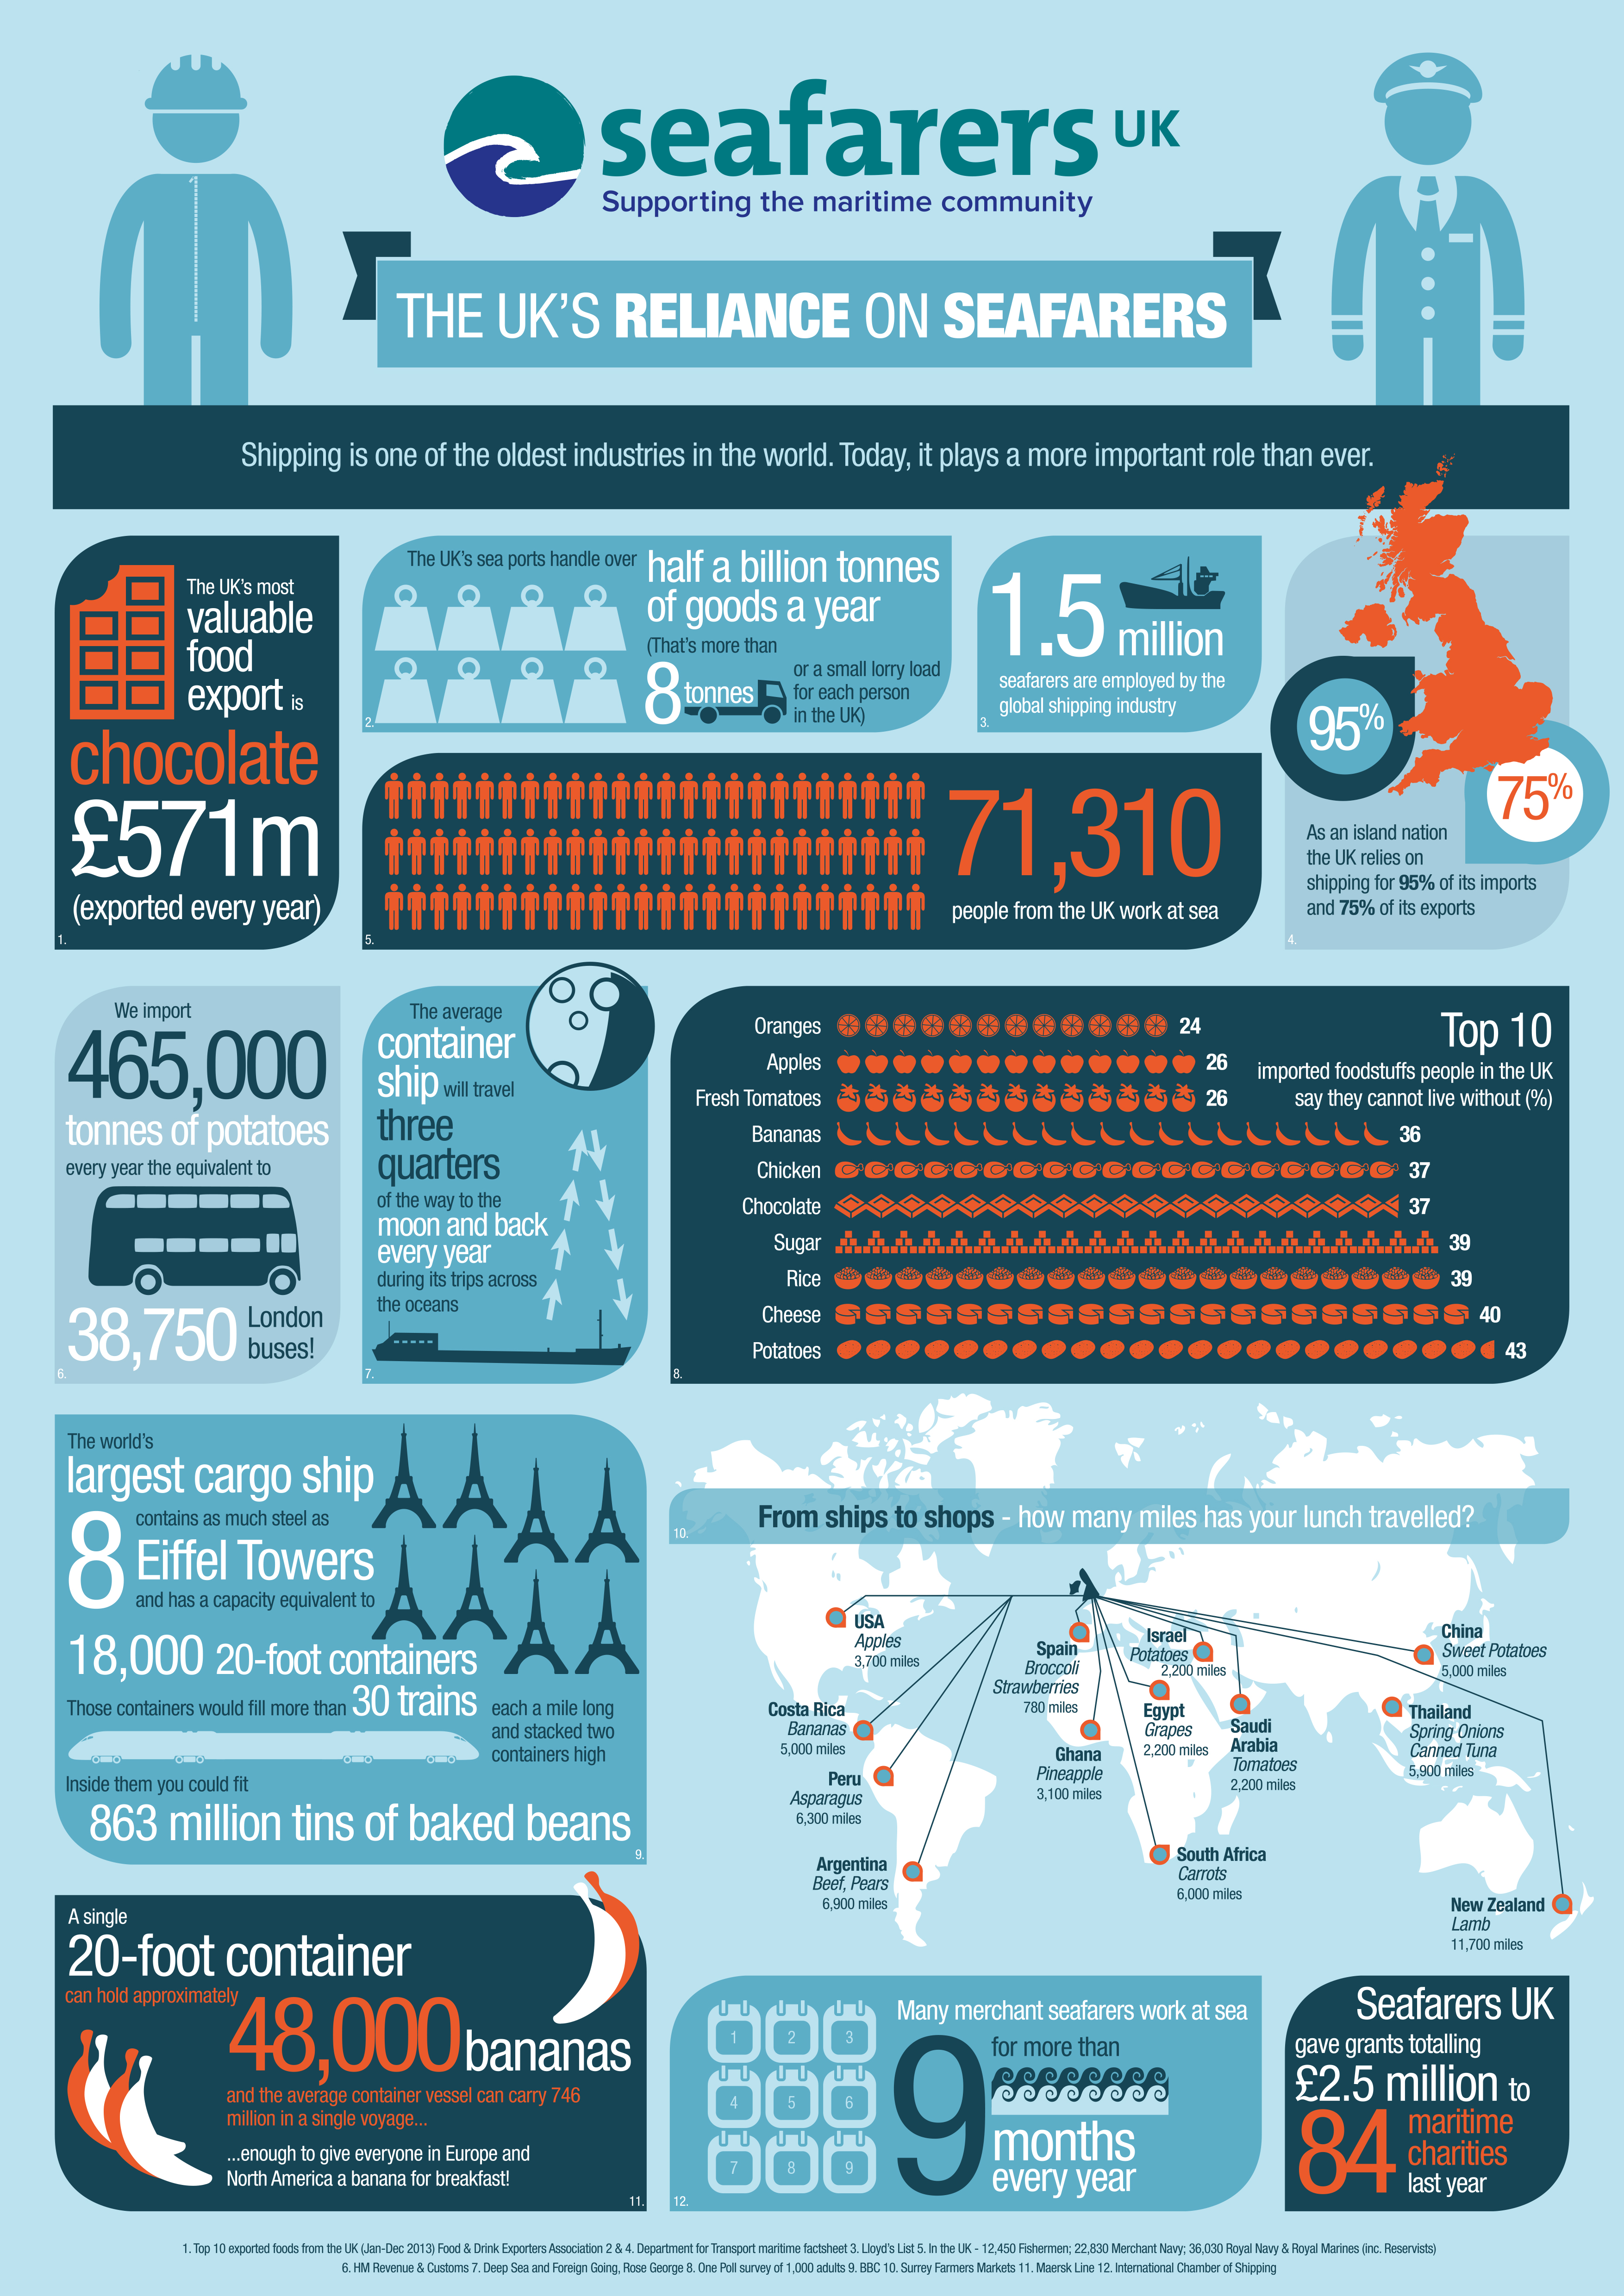 The UK's Reliance on Seafarers